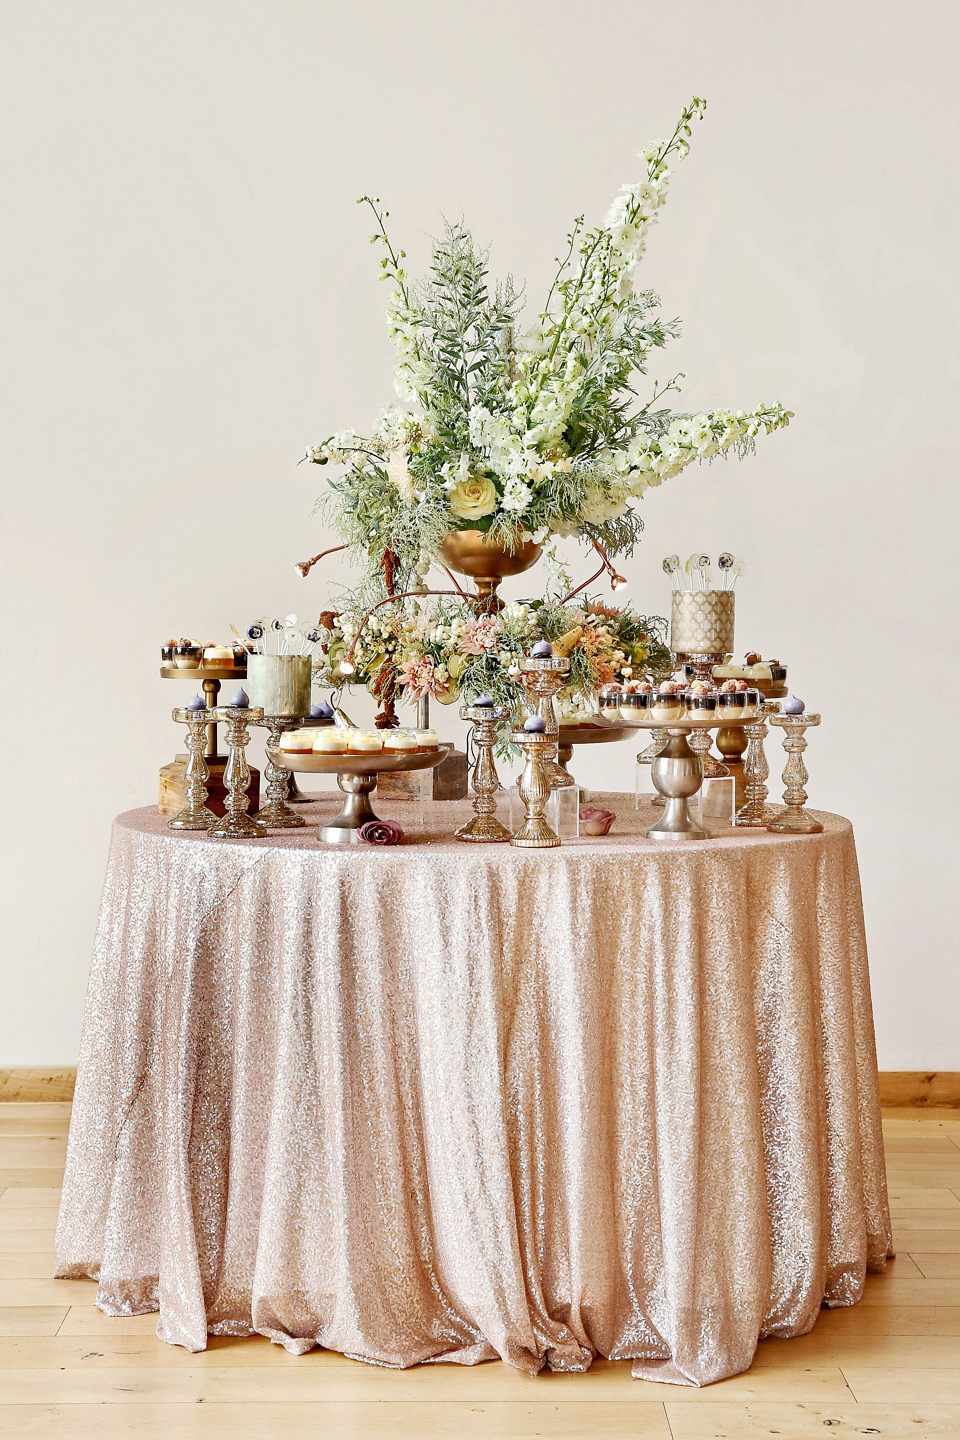 A Feast To Remember – Wedding Food & Styling Advice From Little Book For Brides Members